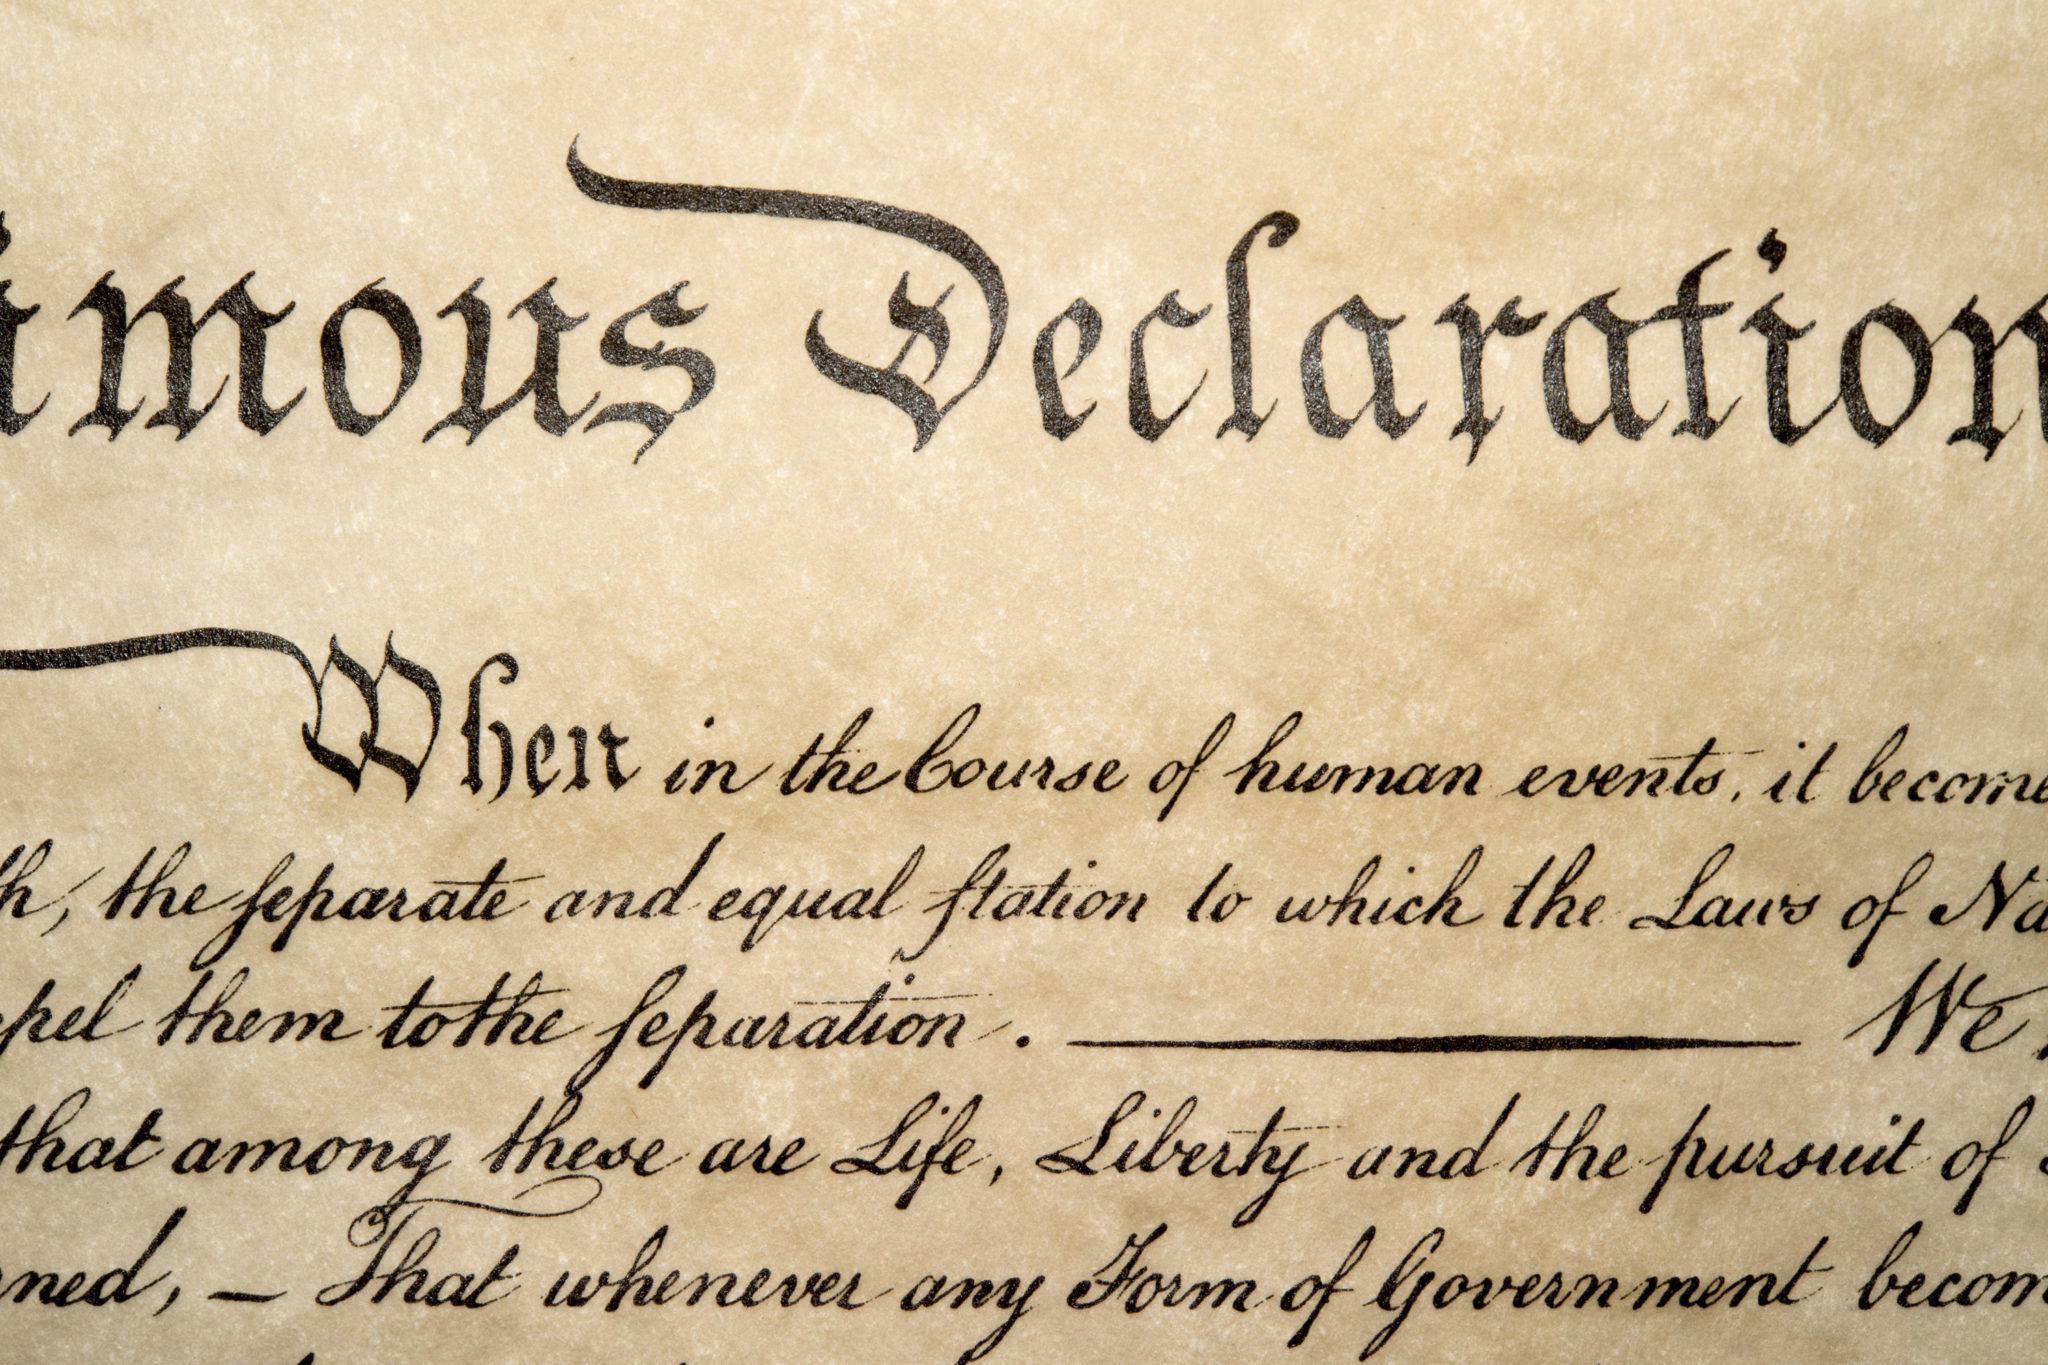 Declaration of Independence - We Hold These Truths to be Self-Evident